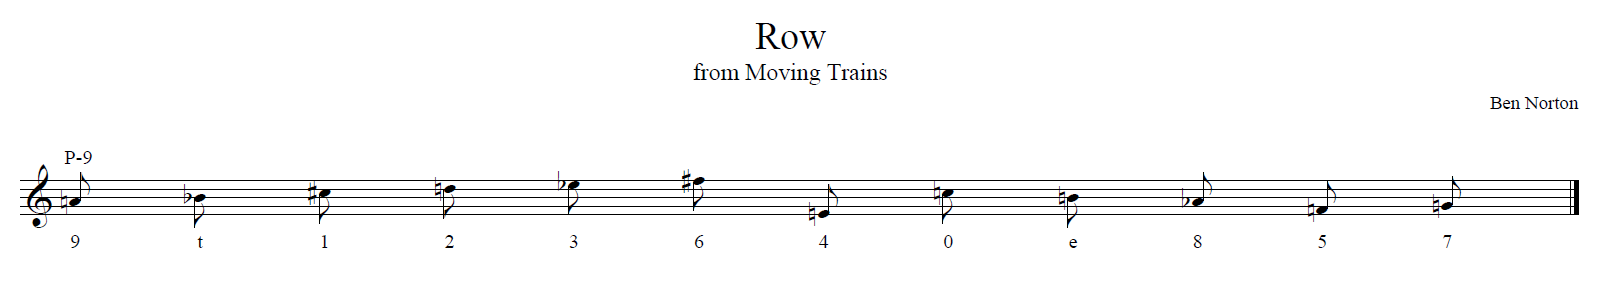 Moving Trains row